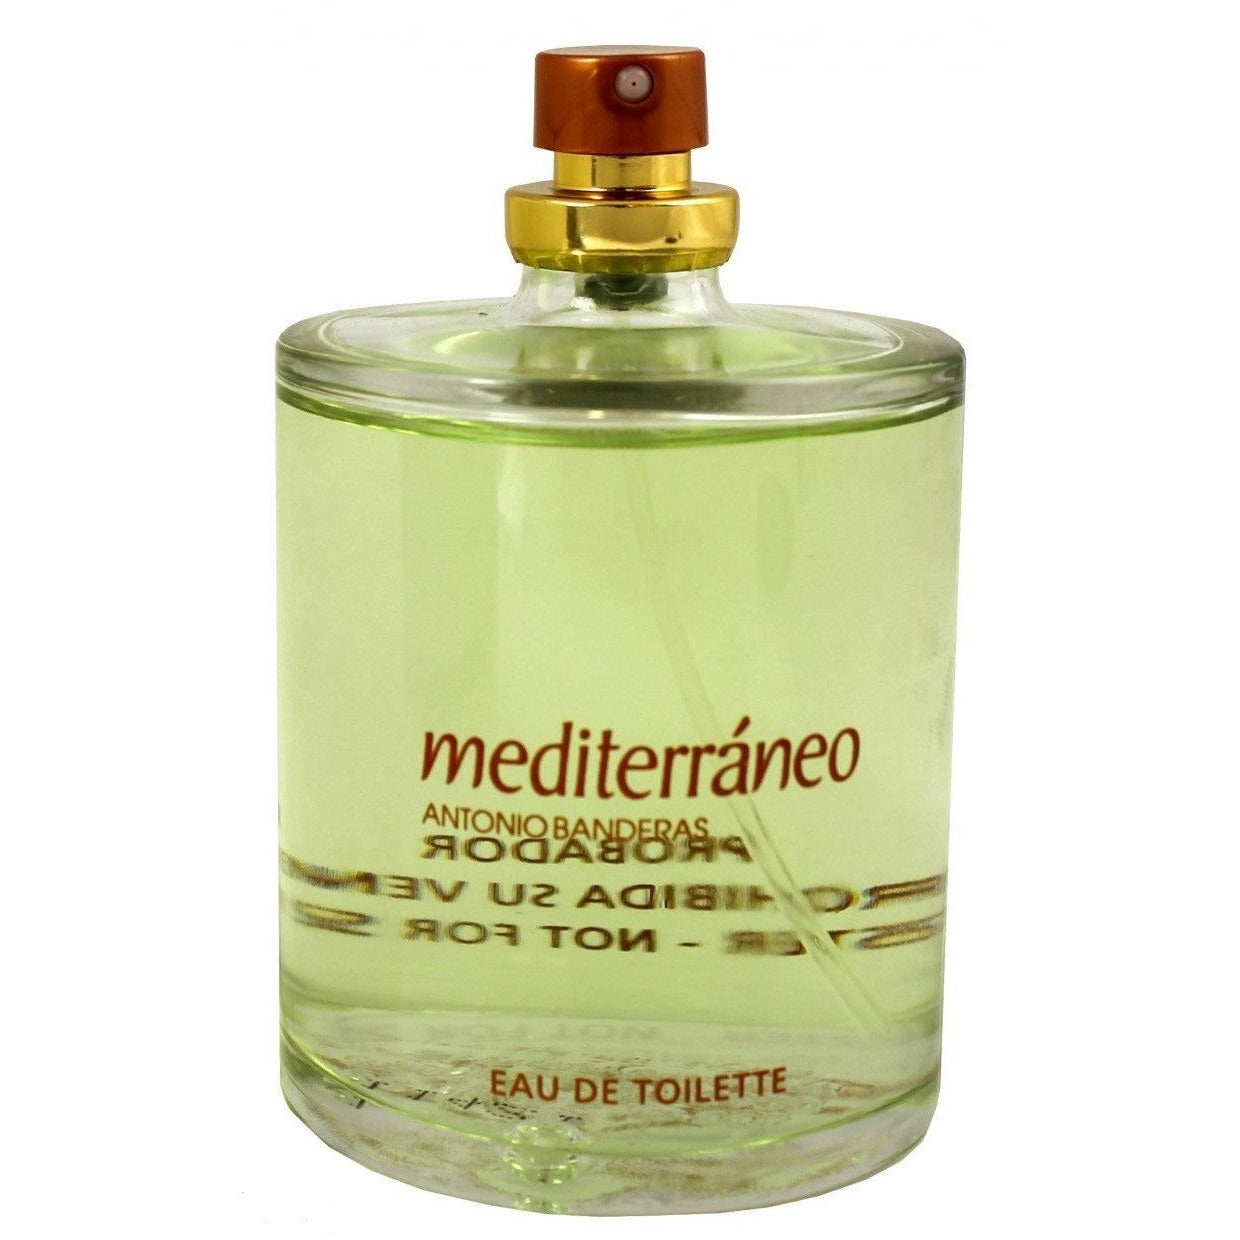 mediterraneo-by-antonio-banderas-3-3-3-4-oz-edt-new-tester